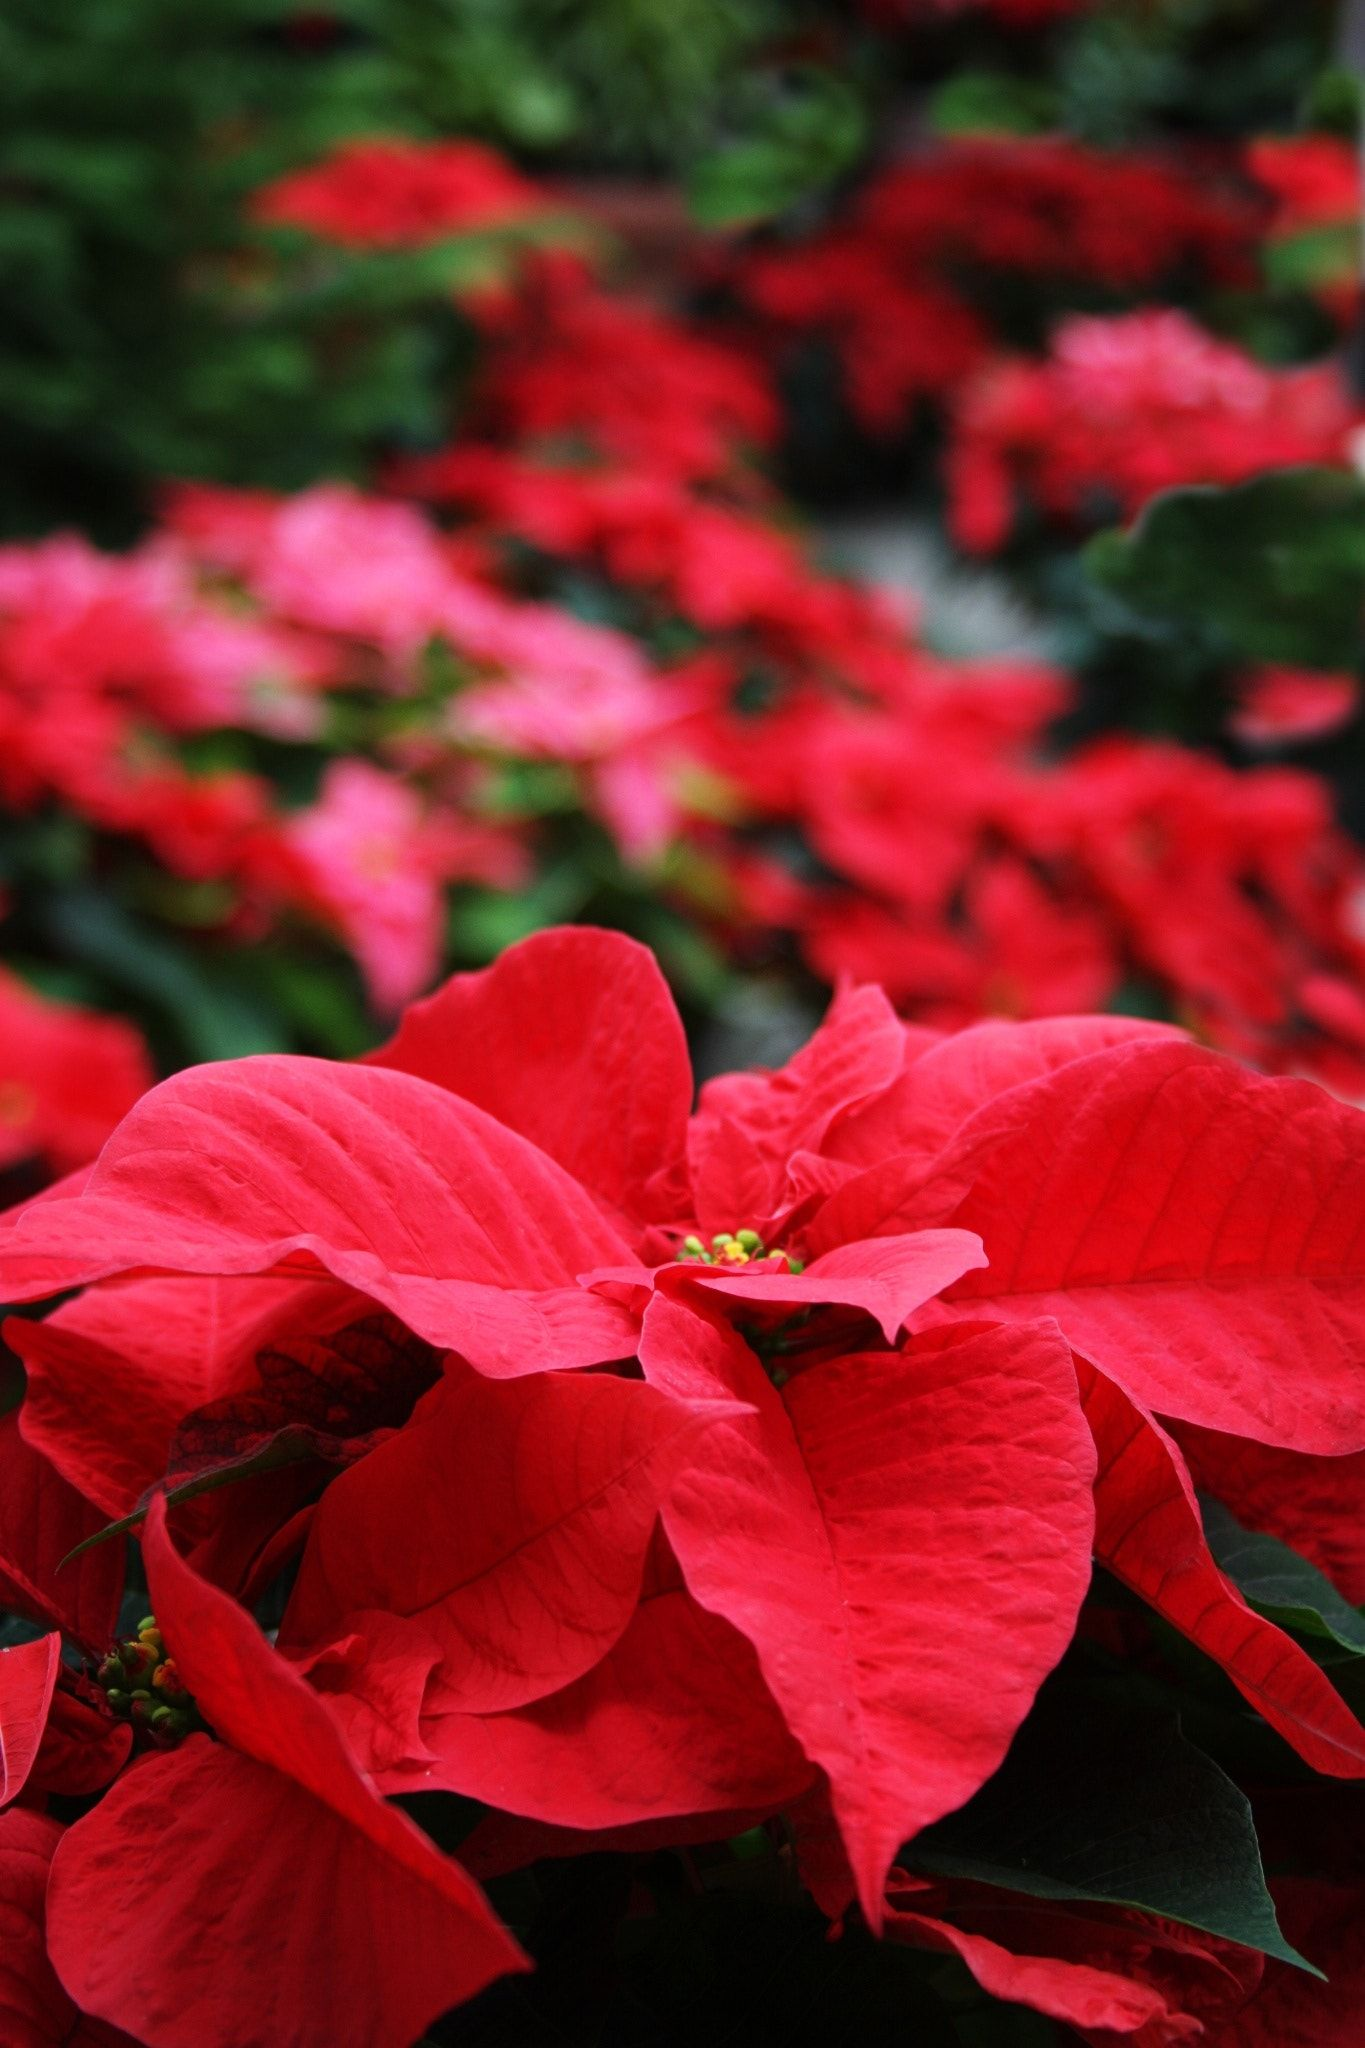 Plenty Of Poinsettia Plants Red And Green Poinsettia Plants Poinsettia Plant Winter Garden Ivy Flower